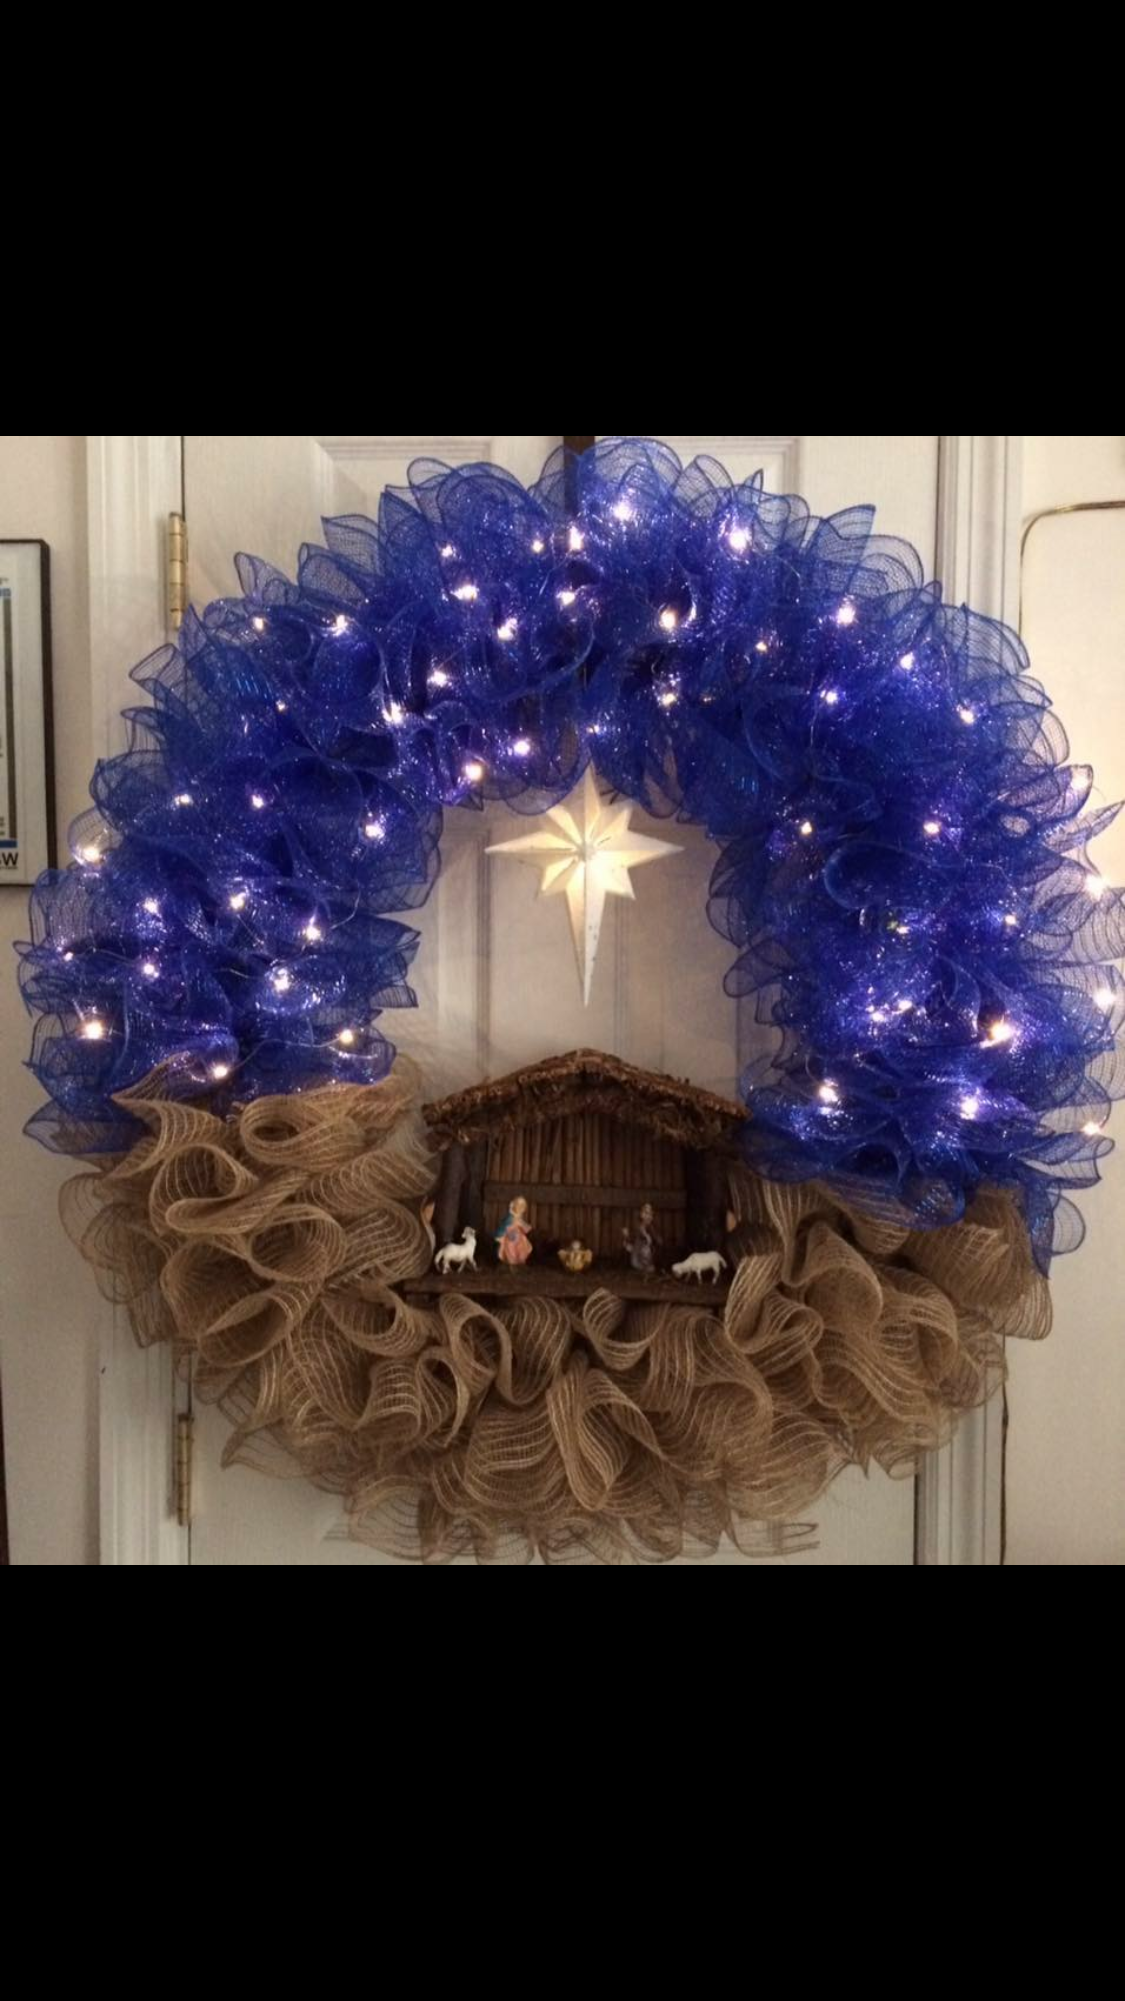 Pin By Judy Gault On Wreaths Christmas Wreaths Diy Christmas Wreaths Christmas Diy